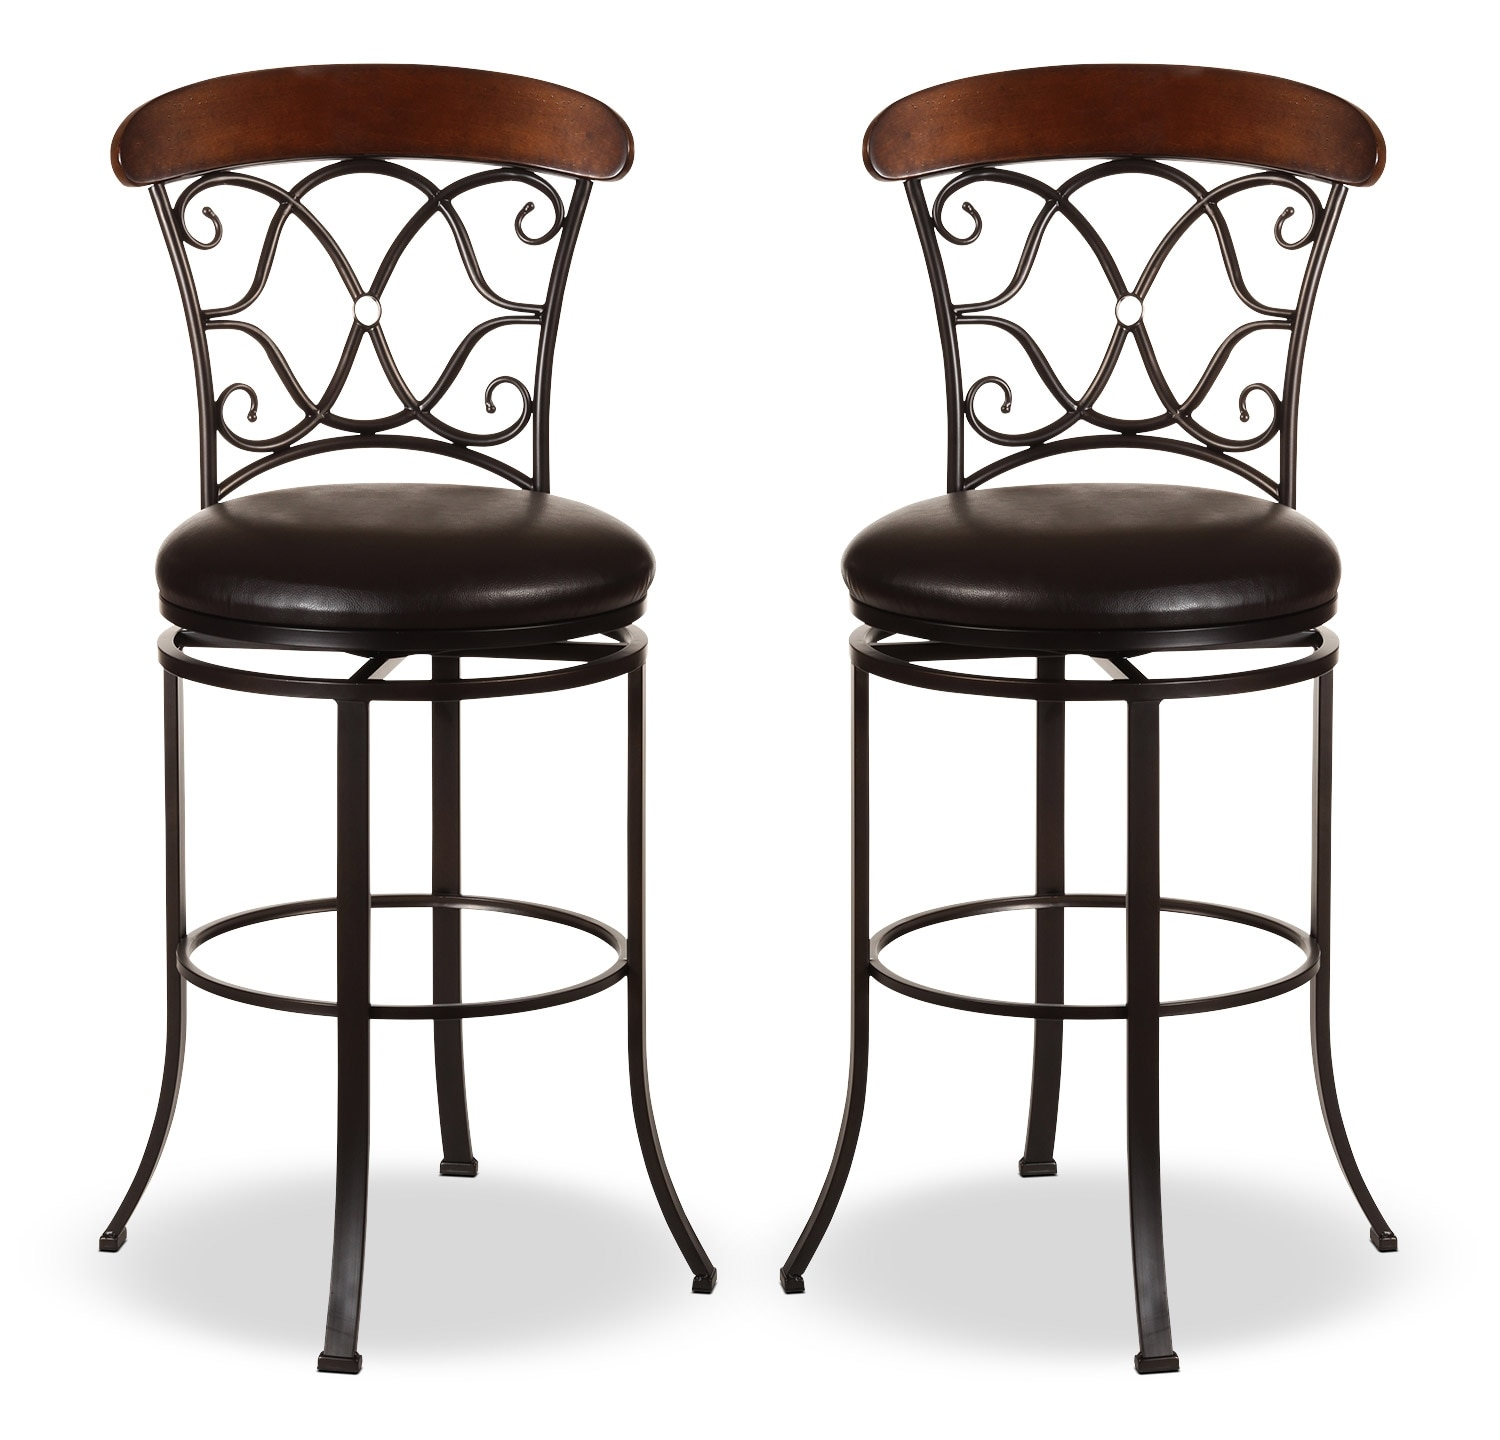 Dining Room Furniture - Dundee Counter-Height Swivel Stool – Set of 2